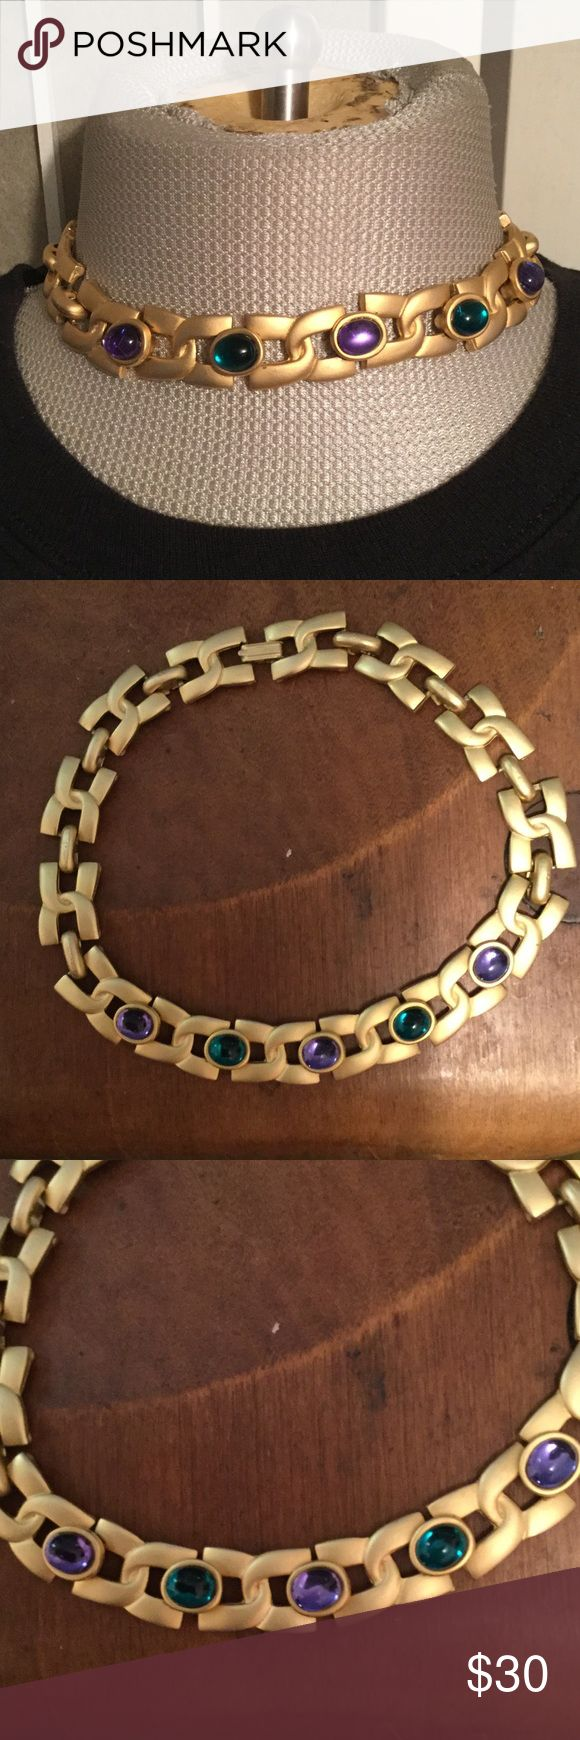 1980s High Quality Costume Jewelry Choker This is a thick linked high quality 1980s choker from Bloomingdales. It's made of brass with gold foil, slightly different then gold plating more commonly used in costume jewelry with high quality beads so they appear like gems. I know it's from Bloomingdales because when I was a small child my aunt would take me to the very fancy Bloomingdales on Lex in NYC and I was holding her hand when she bought it. I wanted it, on most necks it will be a choker…